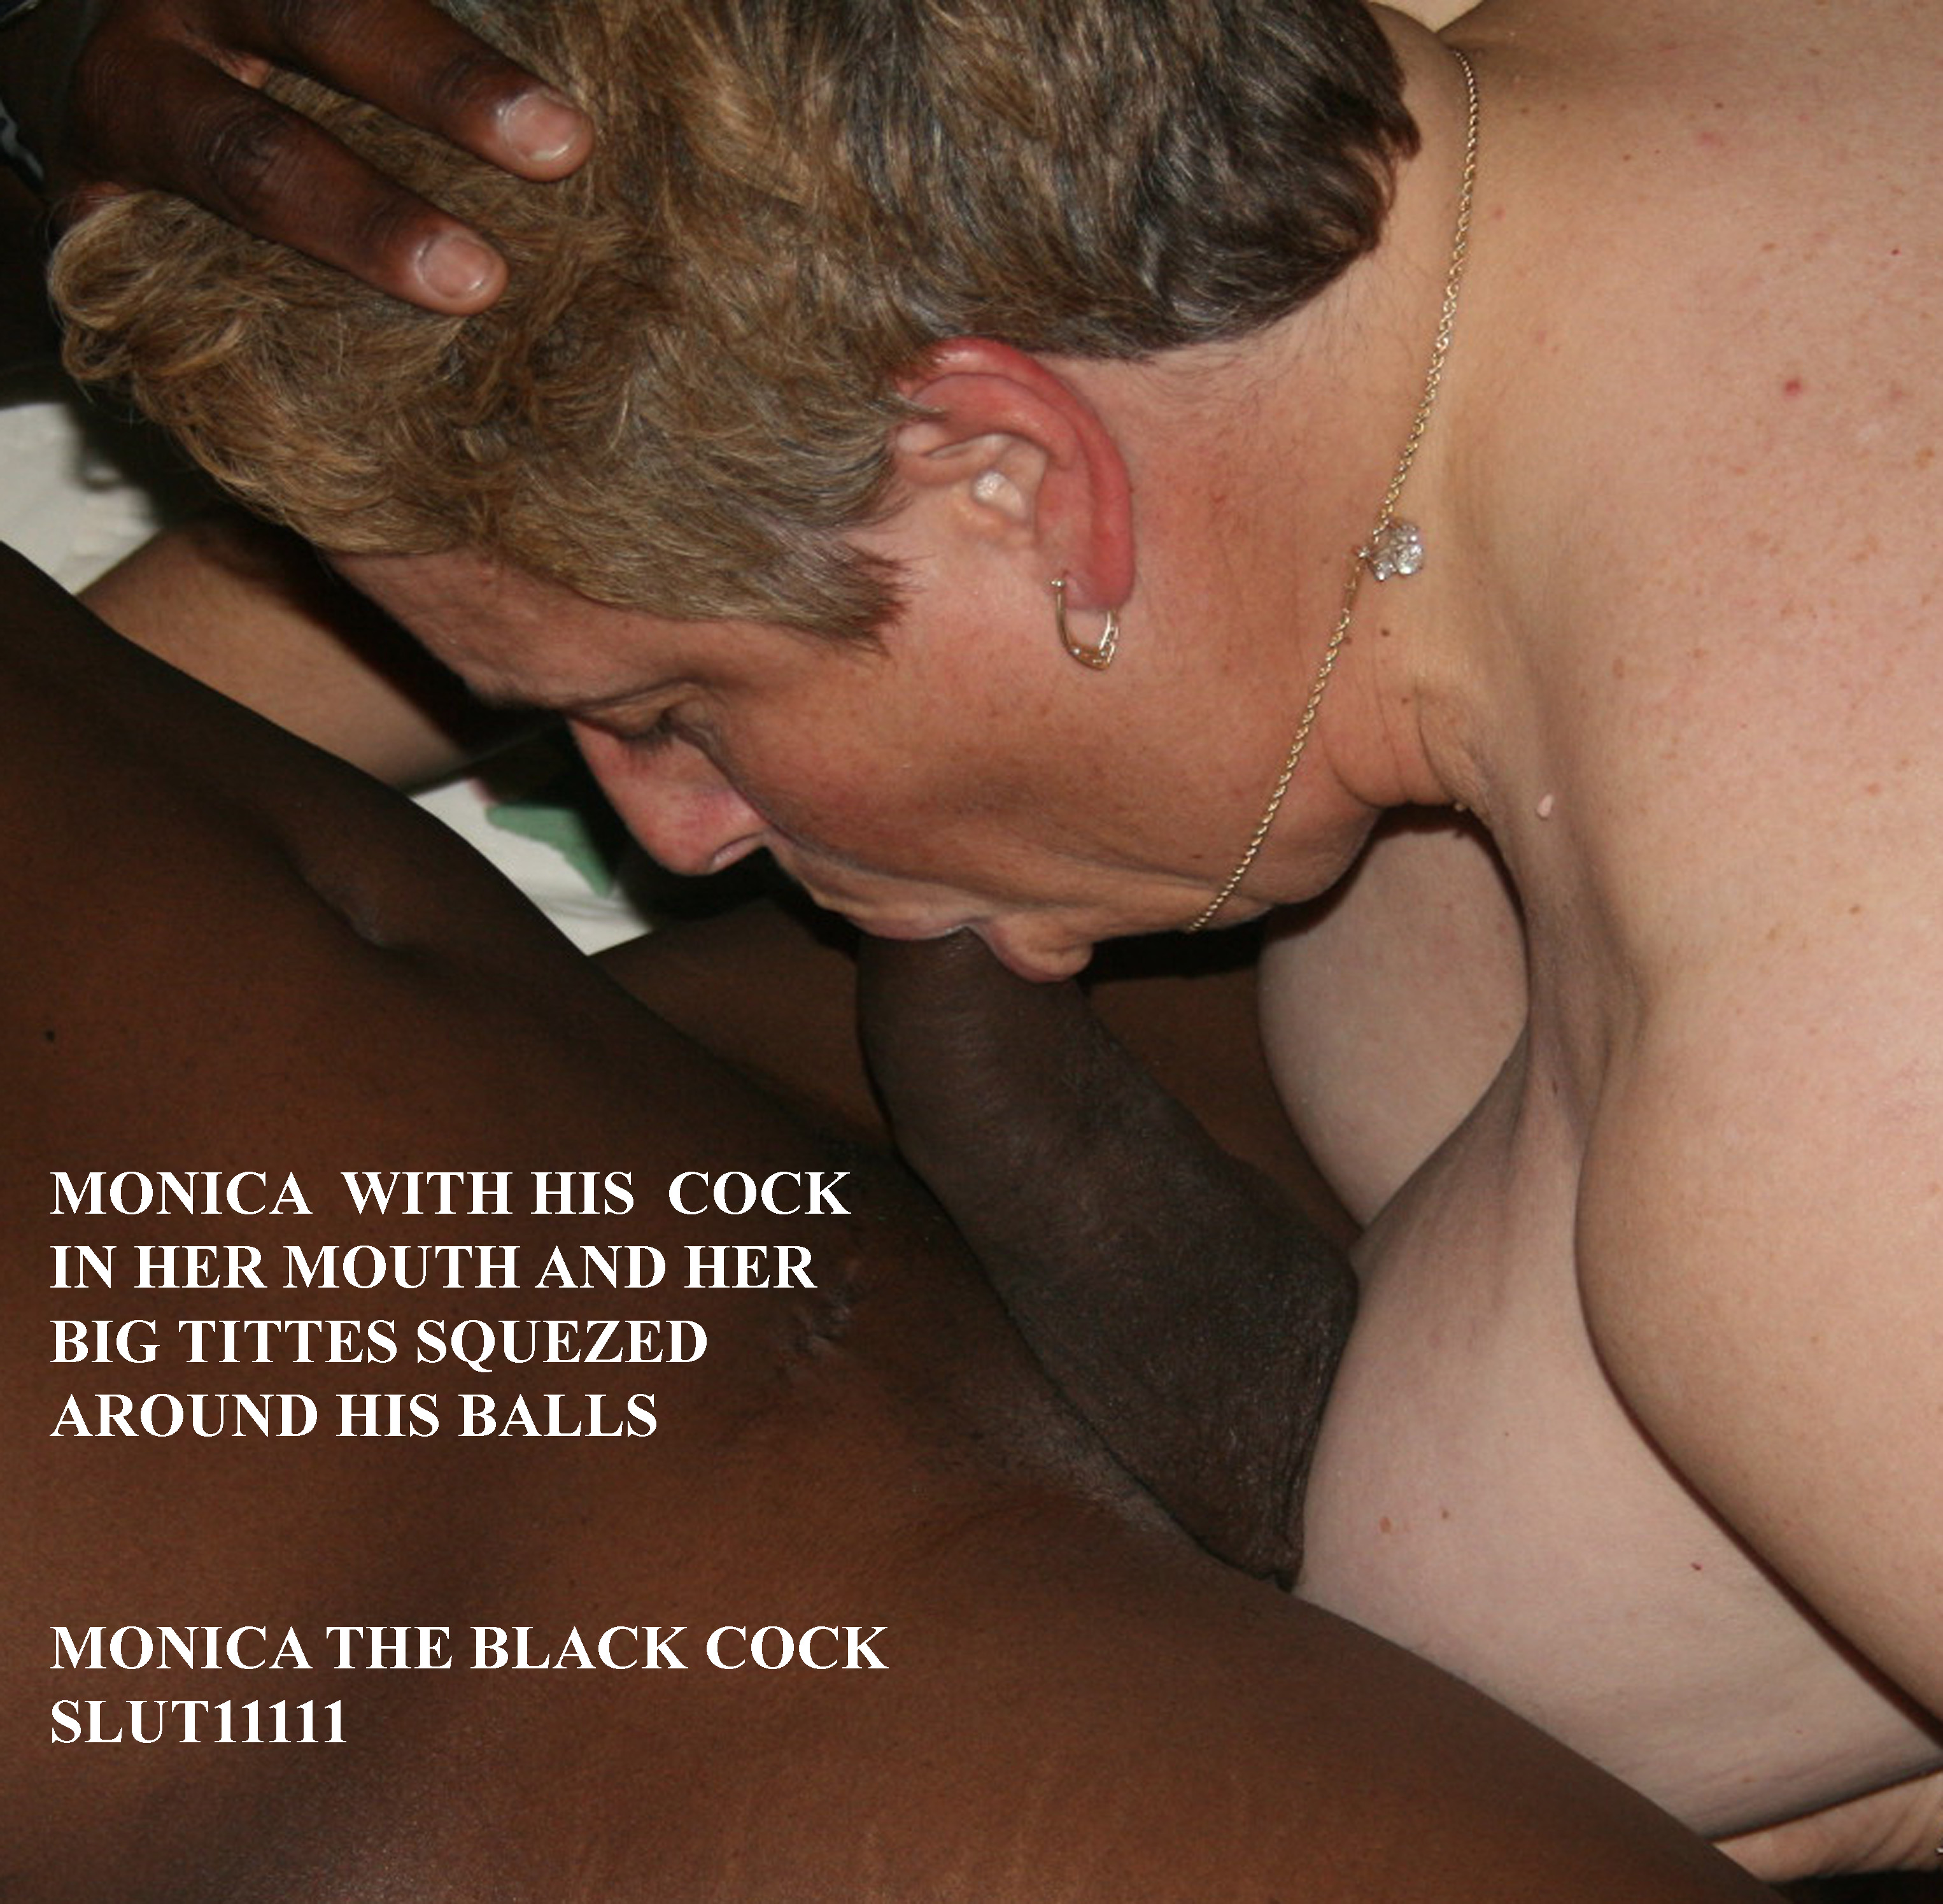 monica always has a cock in her mouth